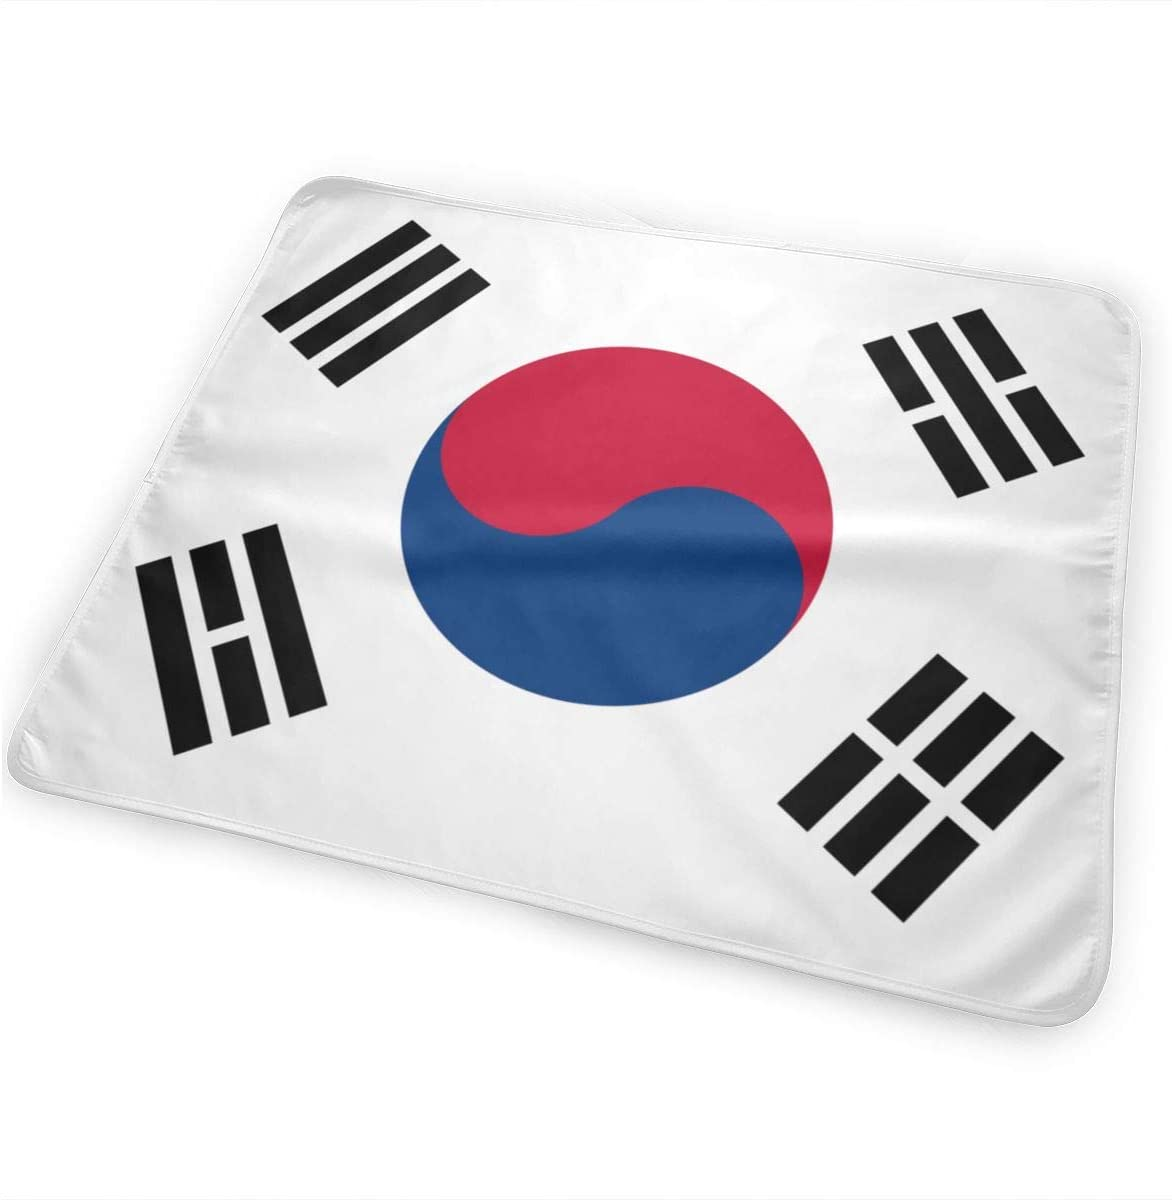 The South Korean Flag Breathable Urine Mat Waterproof Changing Pad for Baby Washable Mattress Pad Sheet Protector